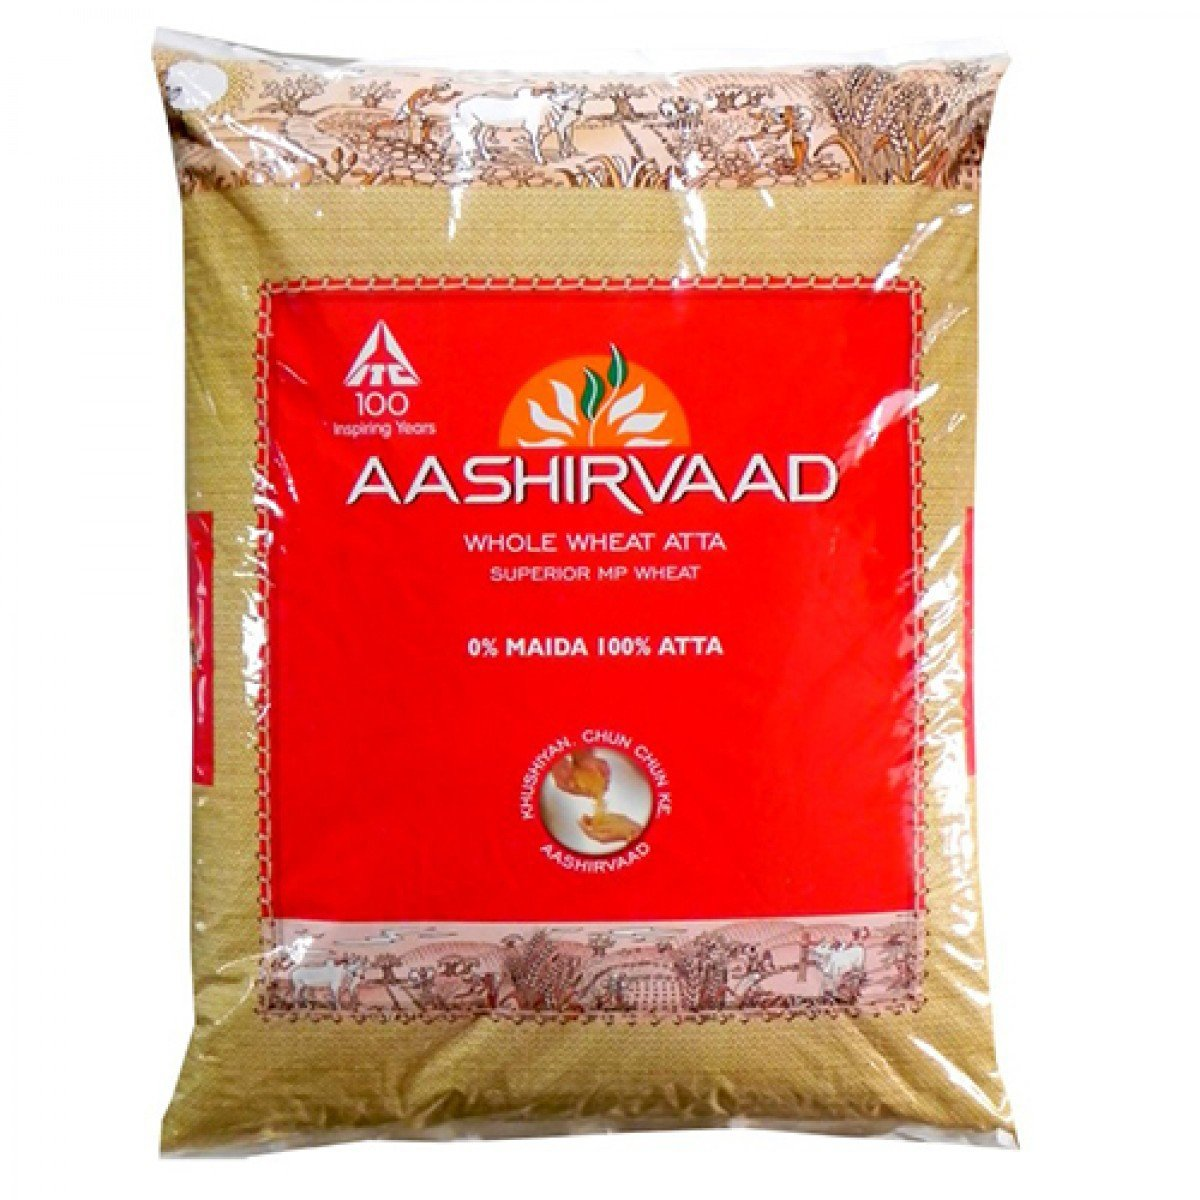 Aashirvaad Flour - Whole Wheat Atta, 5kg Pack: Amazon.in: Grocery ...